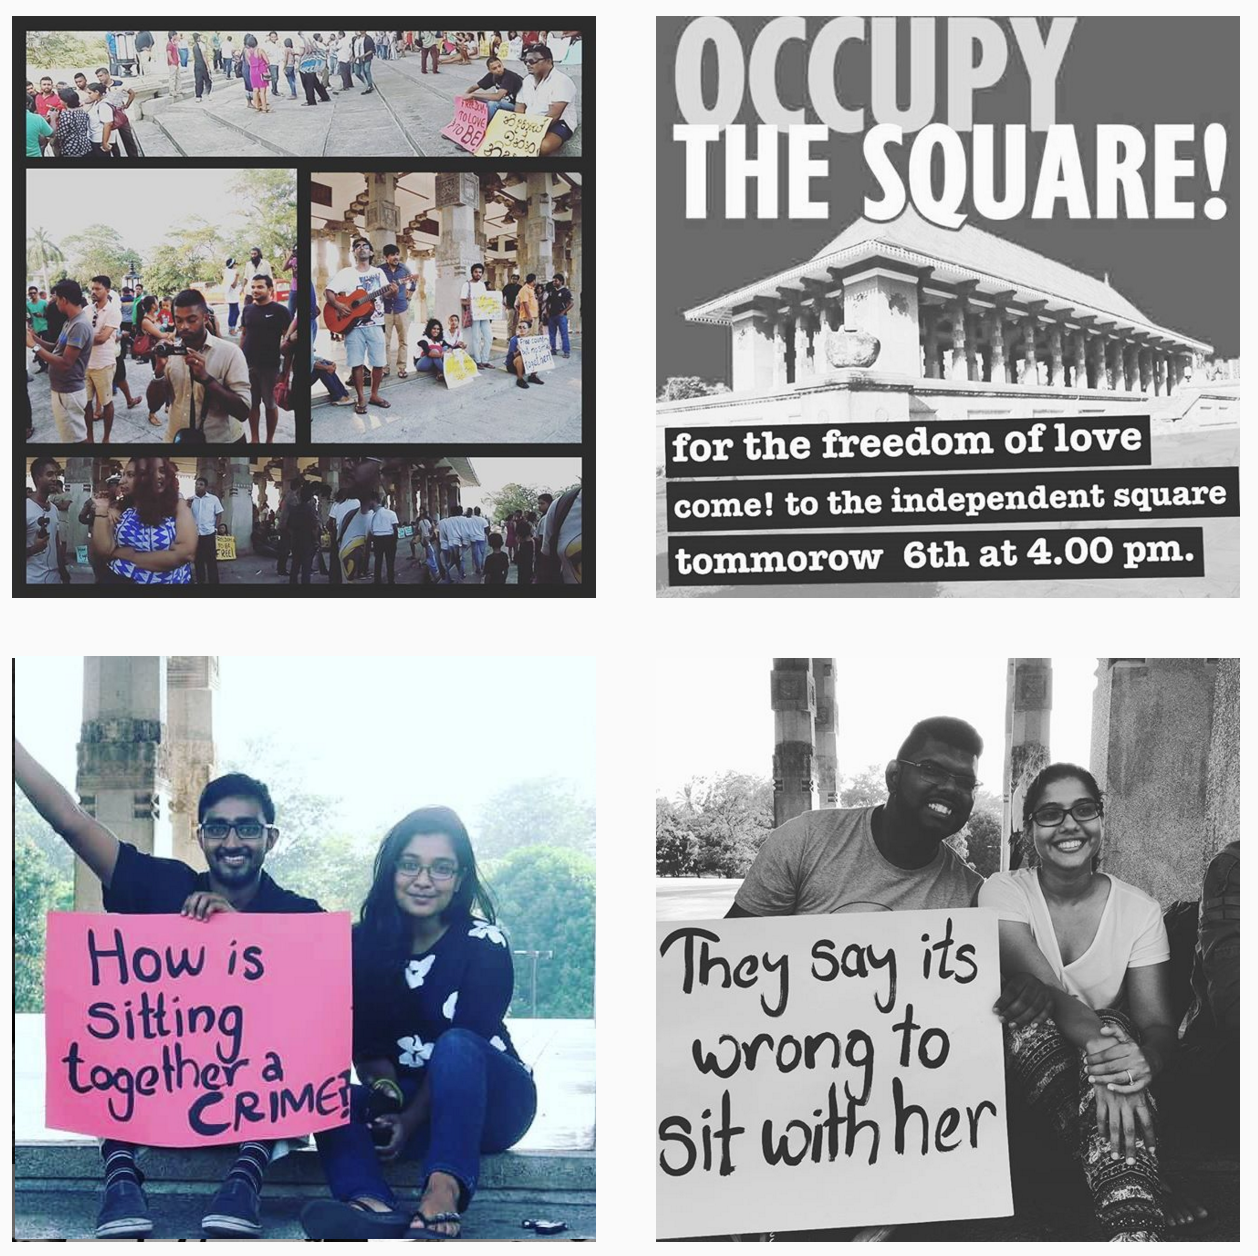 Screenshot from Instagram #OccupyTheSquare